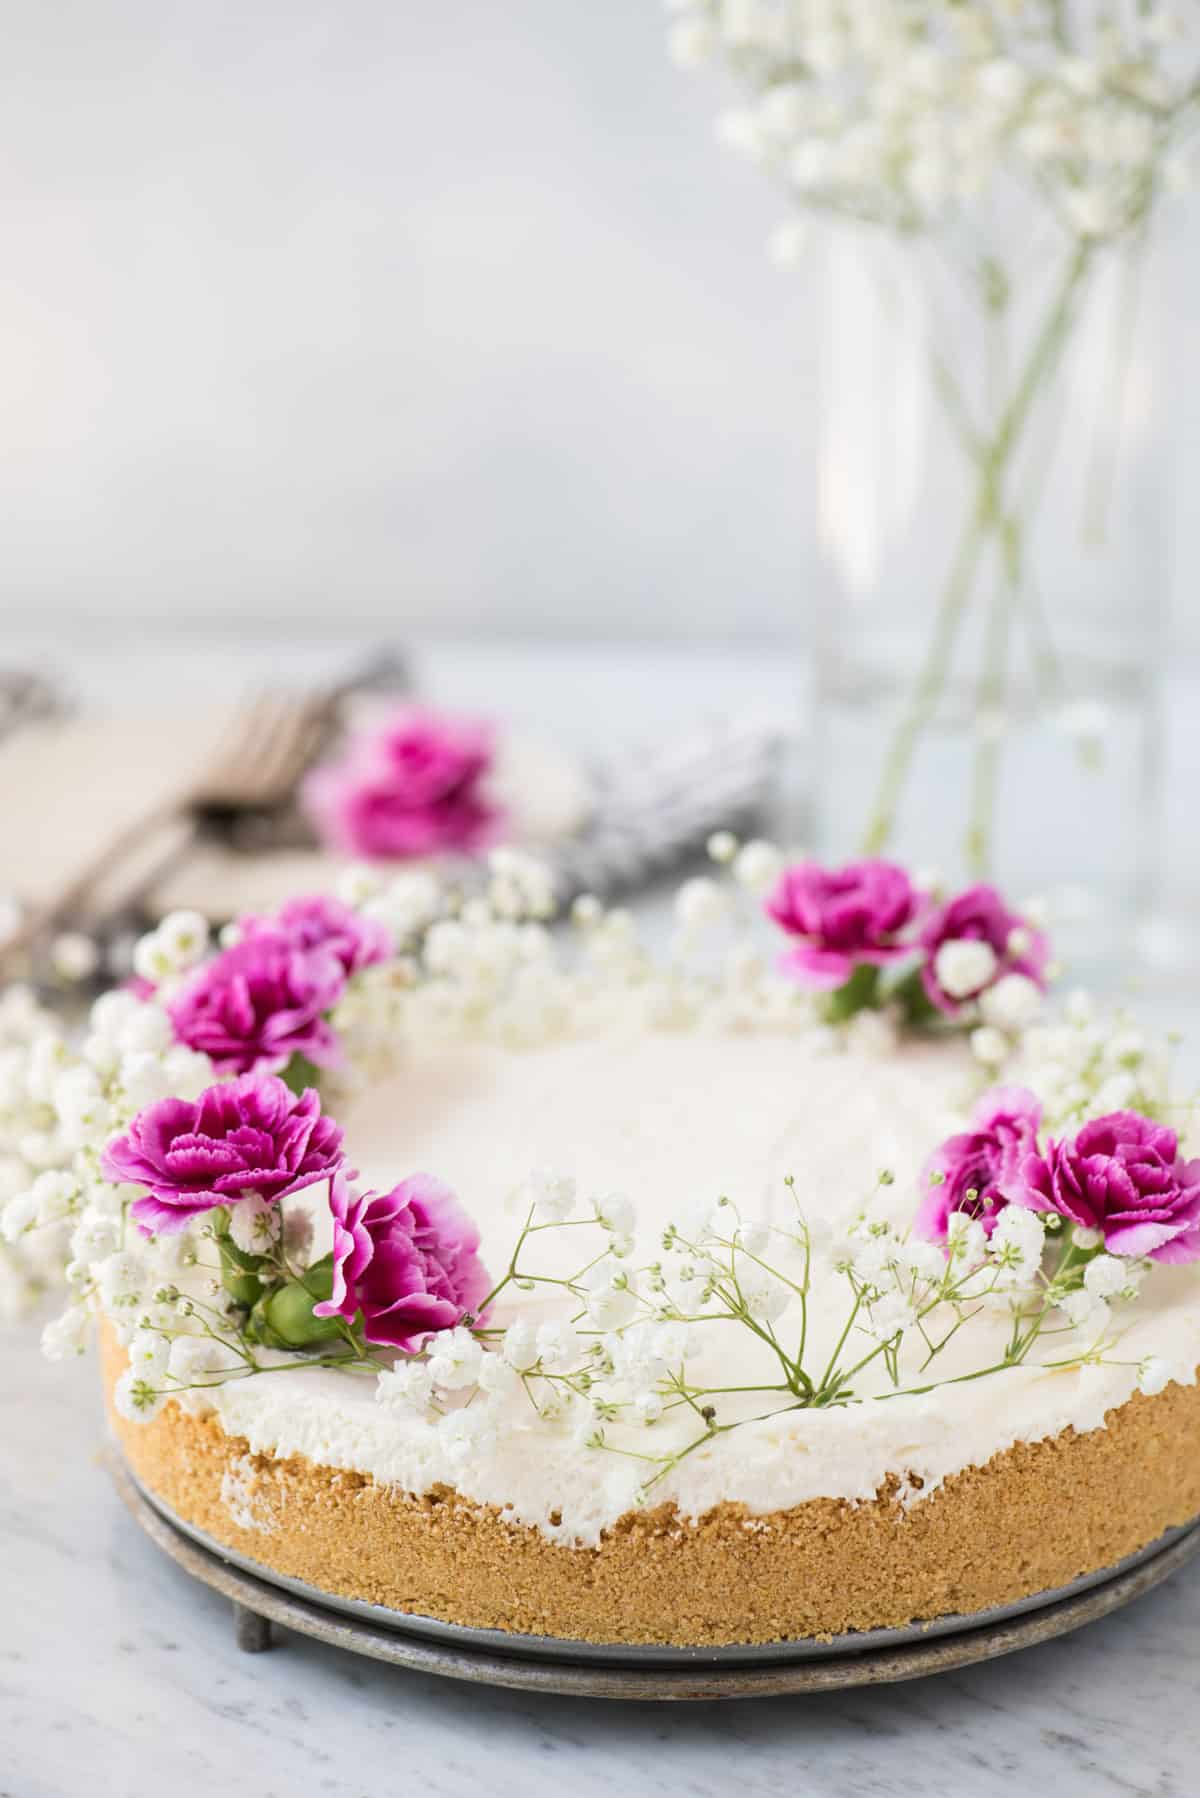 whole no bake cheesecake with white and pink flowers on white marble background